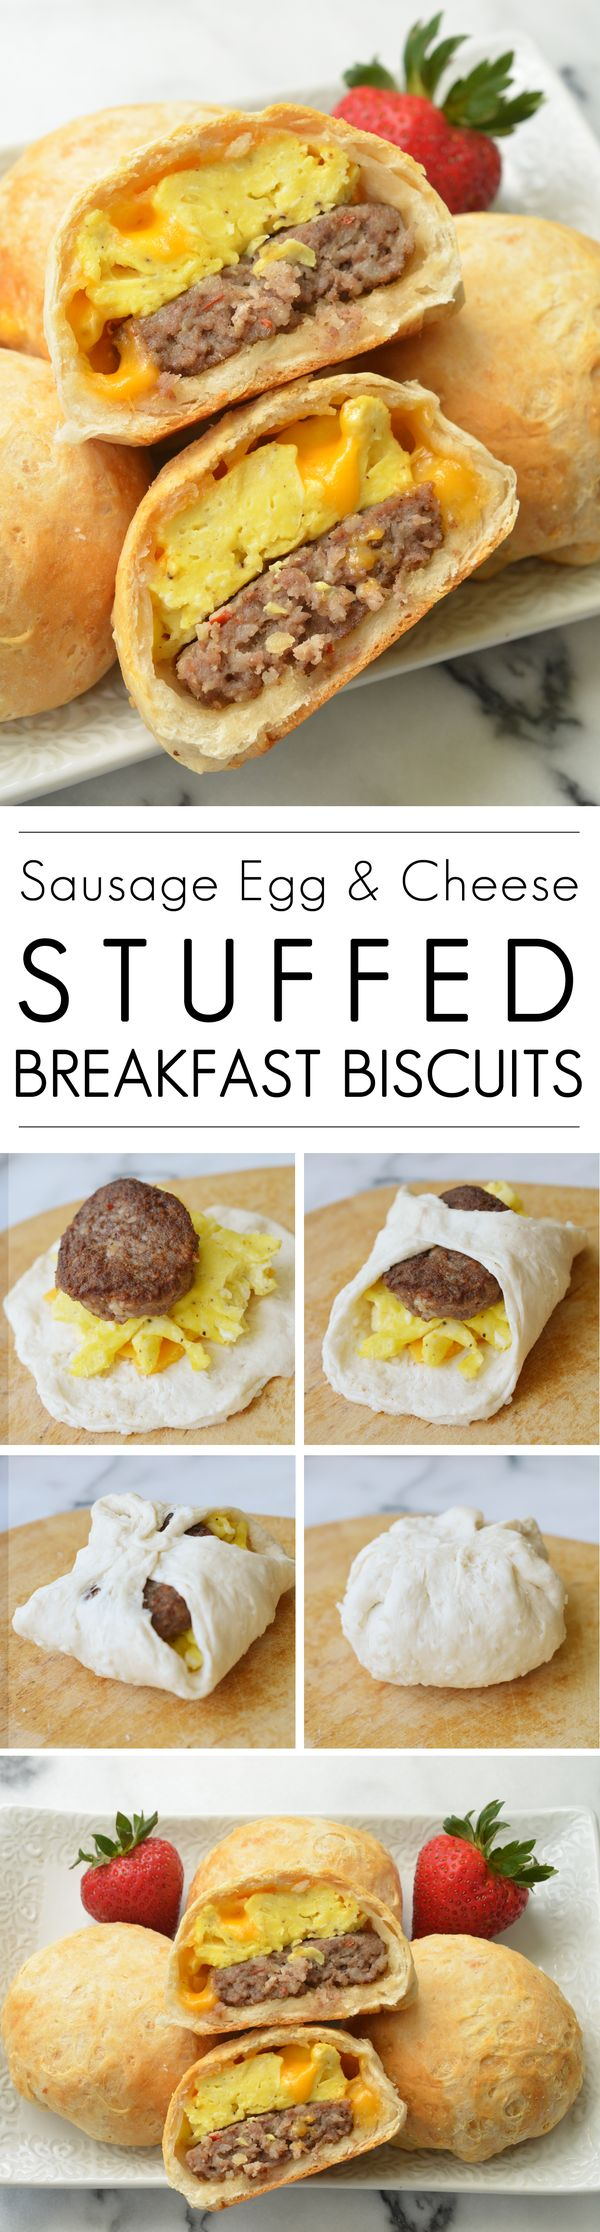 Sausage Egg and Cheese Stuffed Breakfast Biscuits